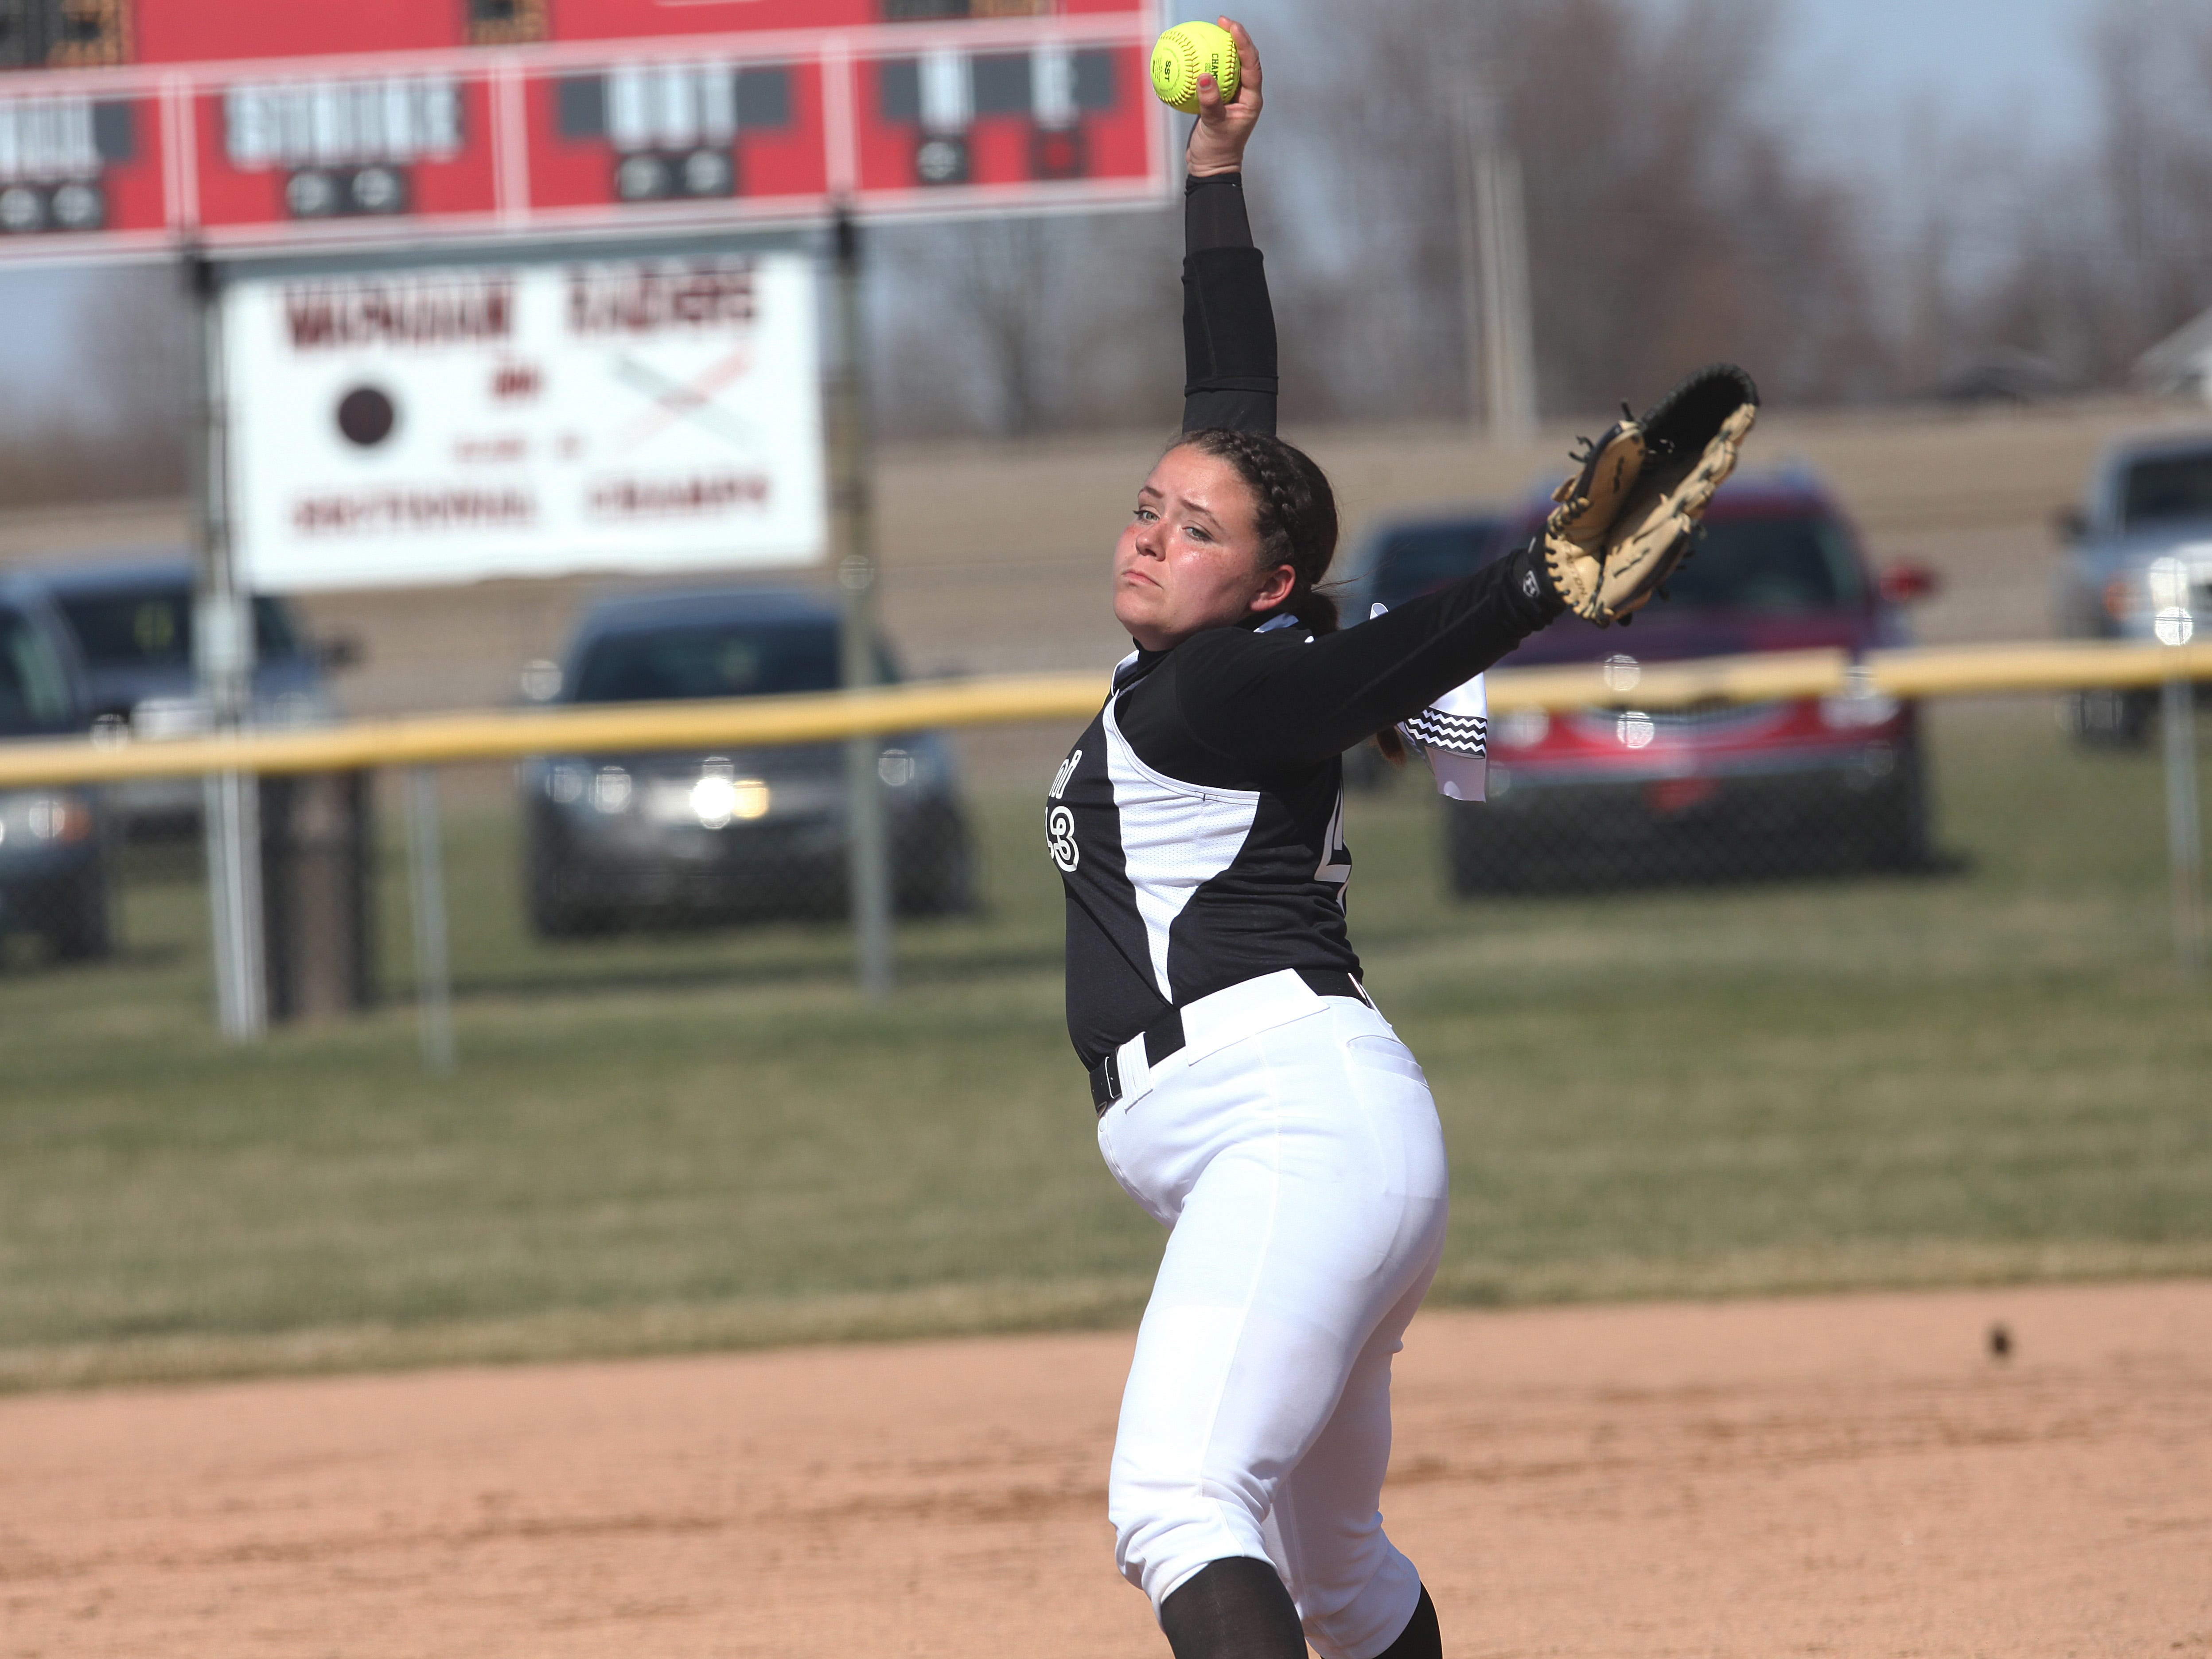 Wapahani's Kaija Aikman delivers a pitch in the Raiders' 8-2 win in game one over Jay County.